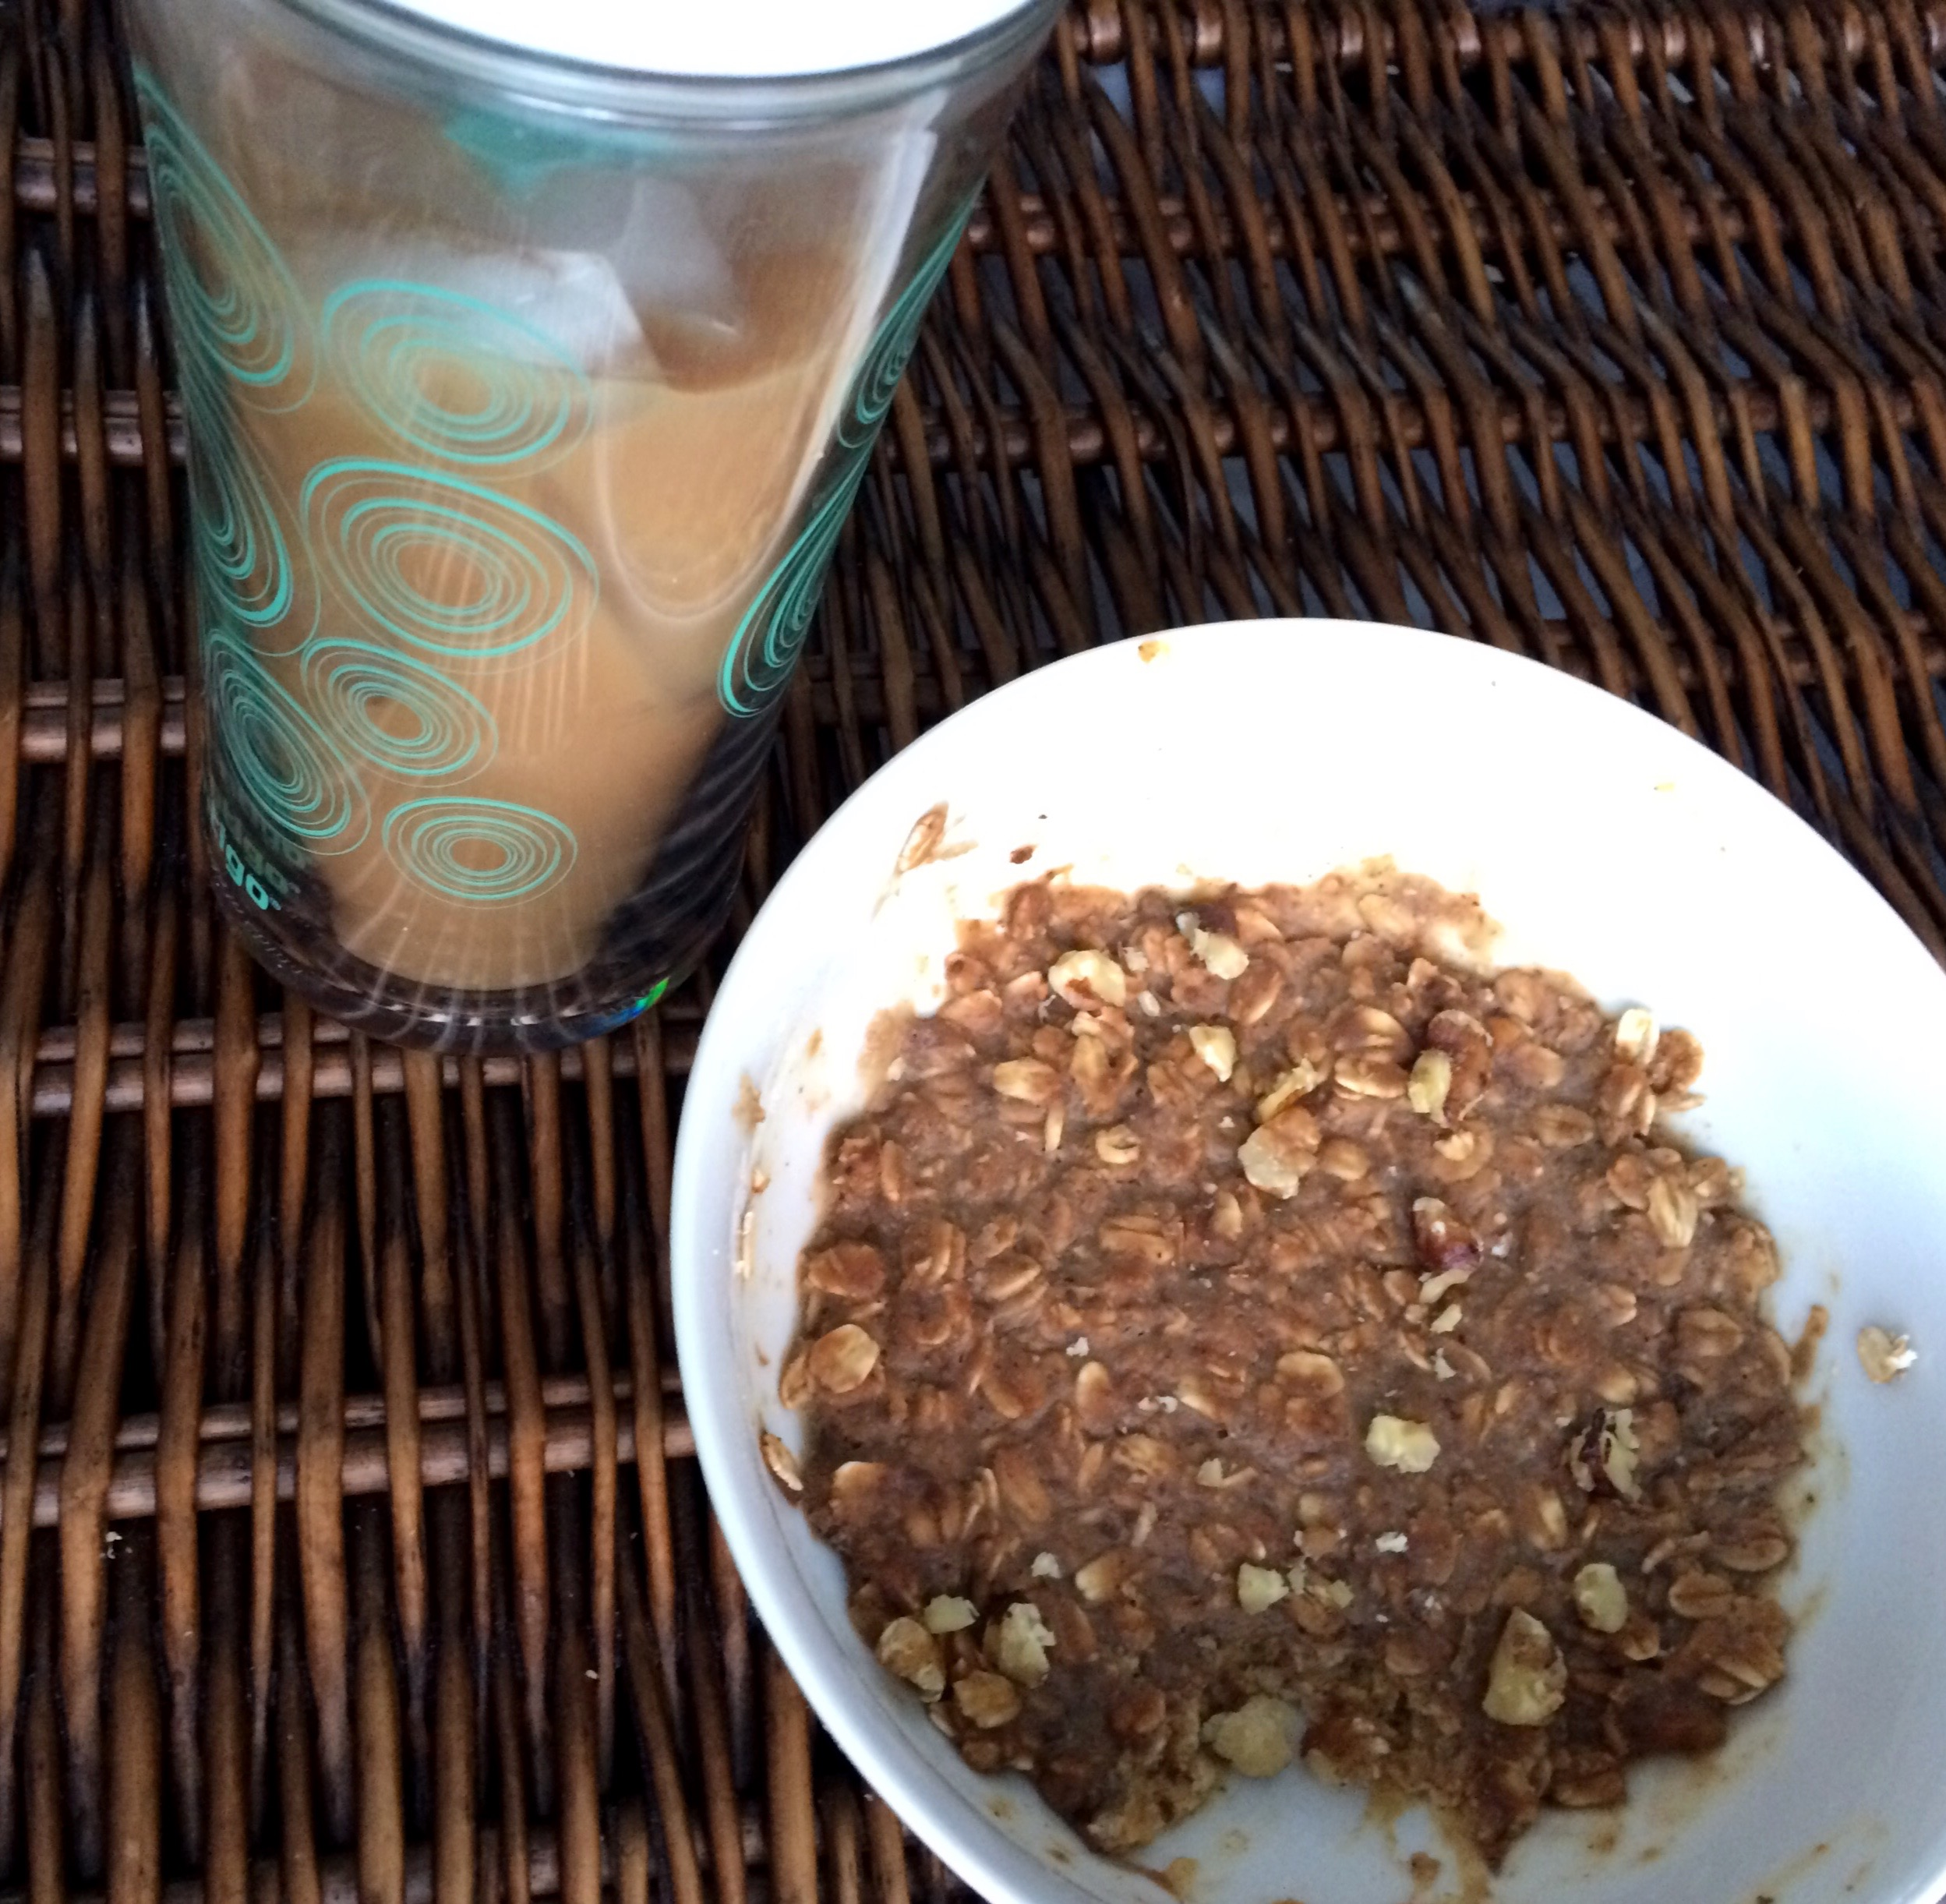 Breakfast cookie dough and cold brew coffee